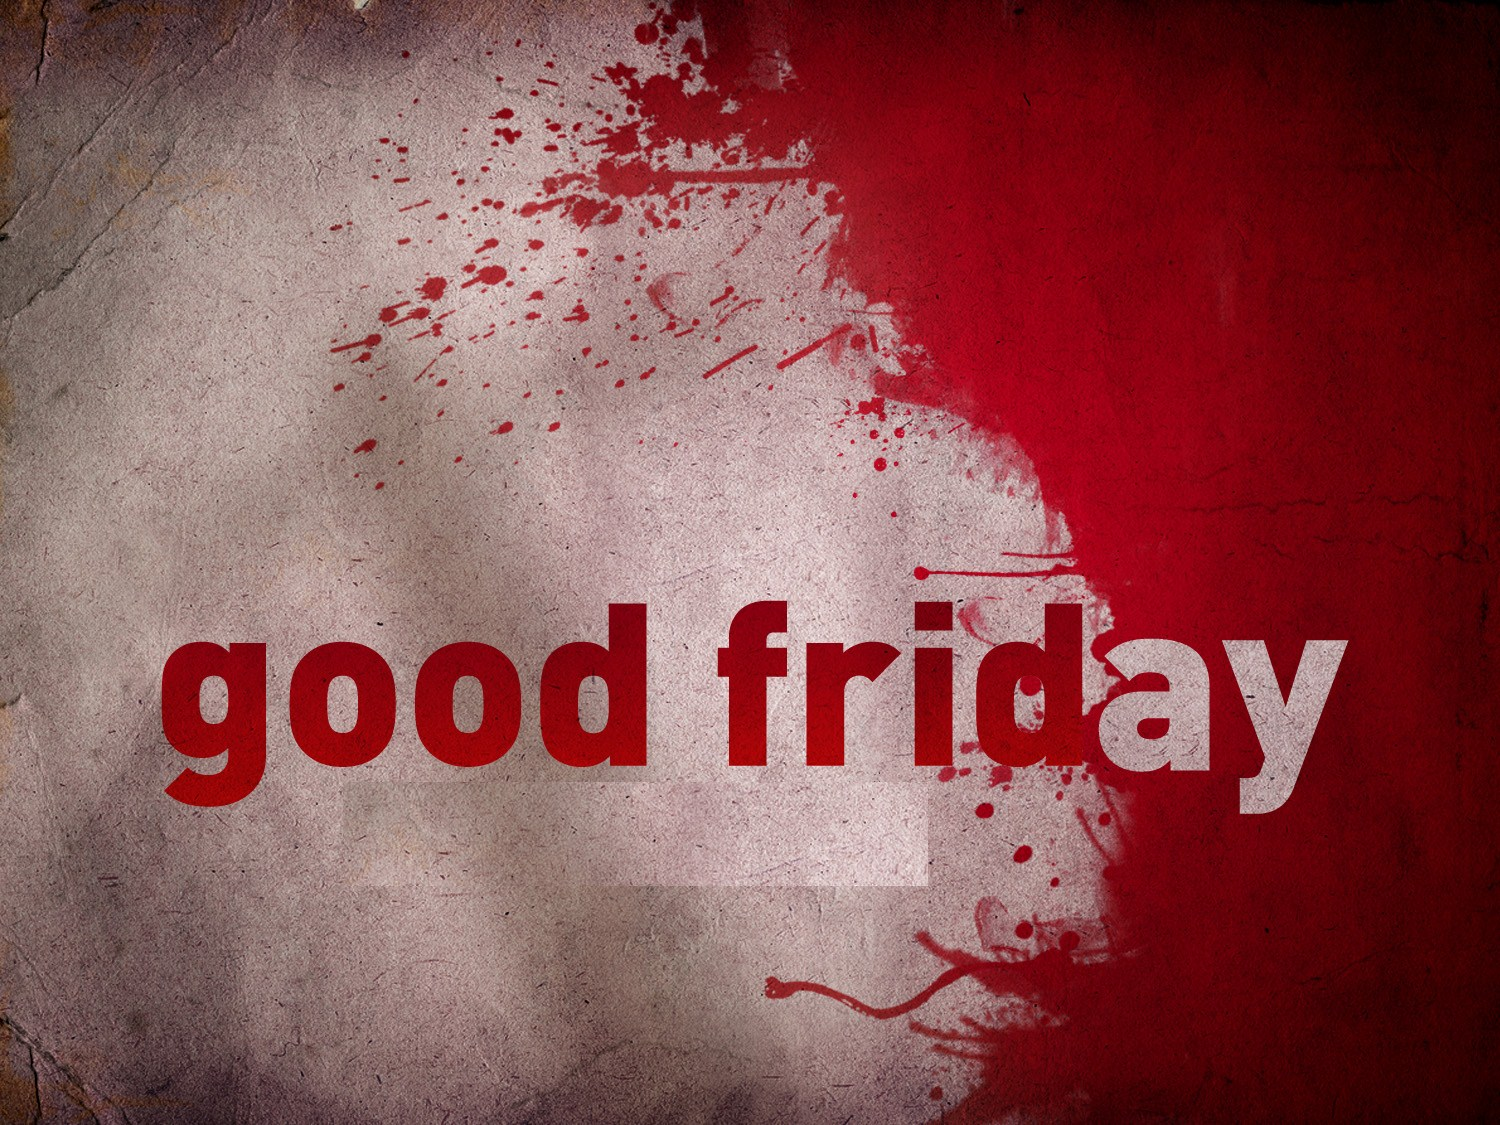 Good Friday Wallpapers Free Christian